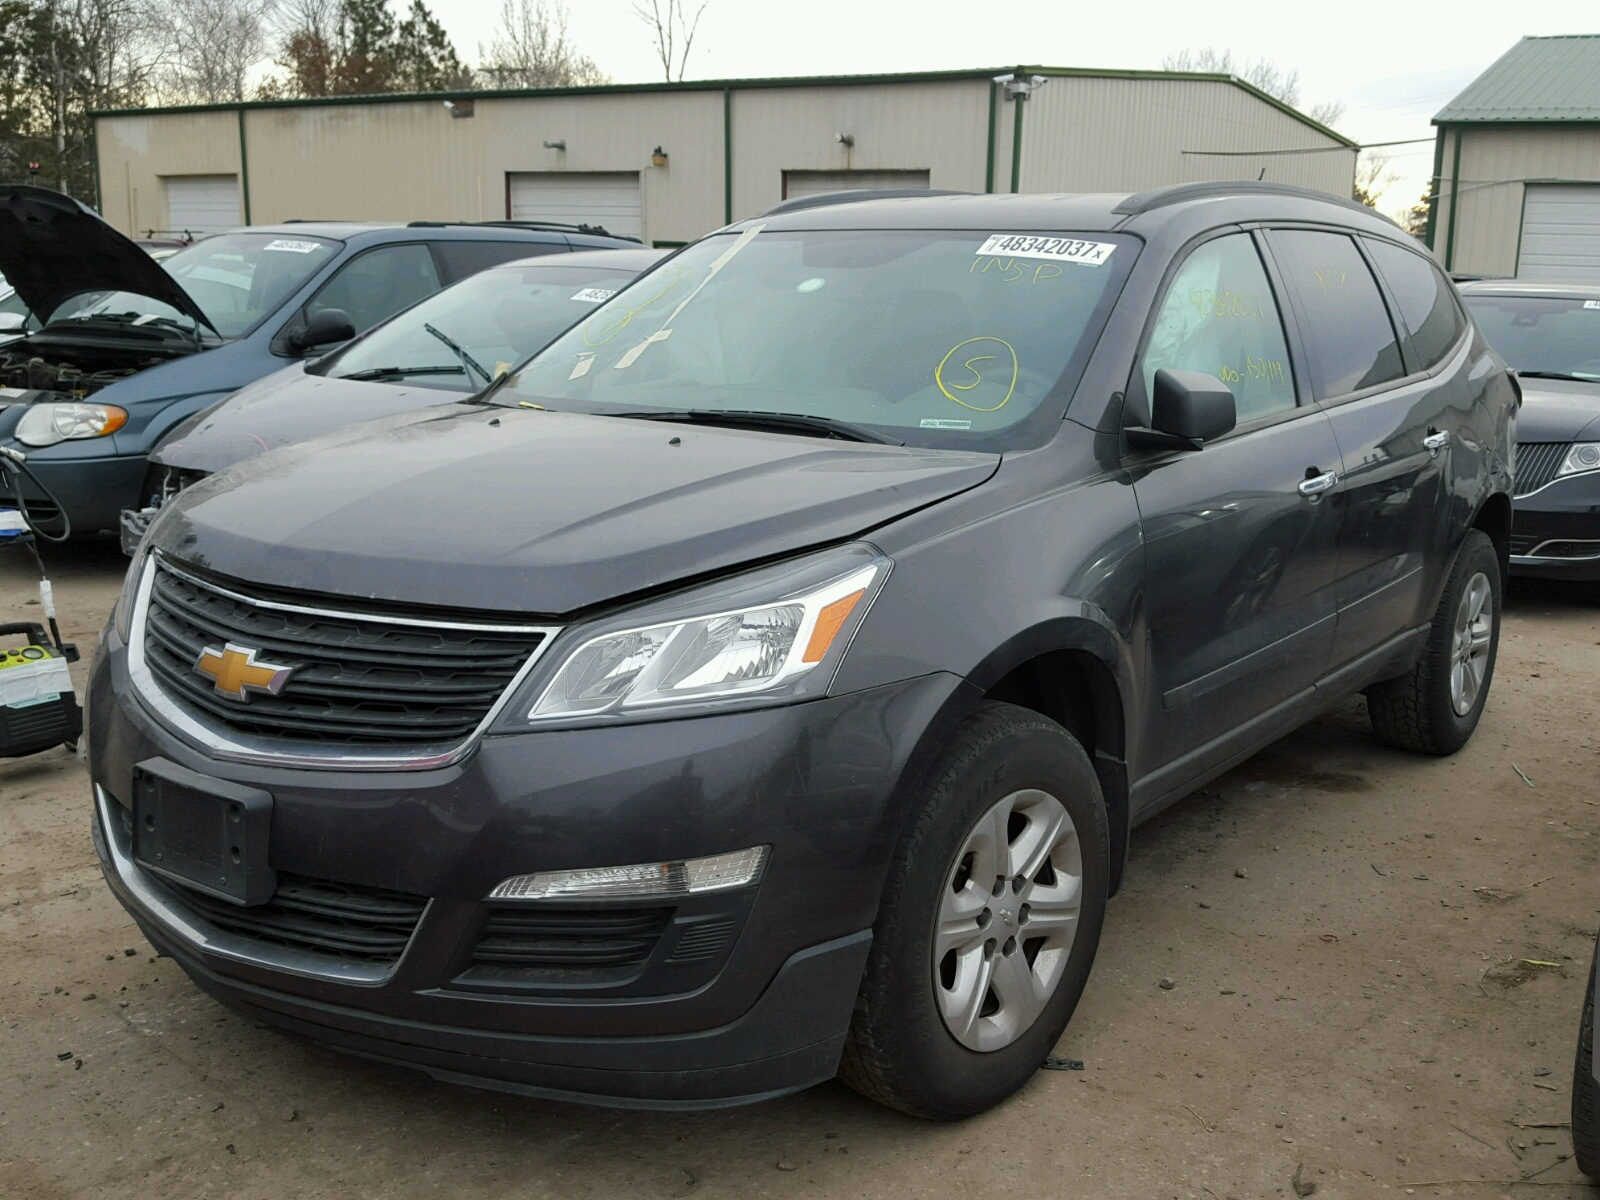 fwd chevrolet traverse auto drive dashboard test our expert